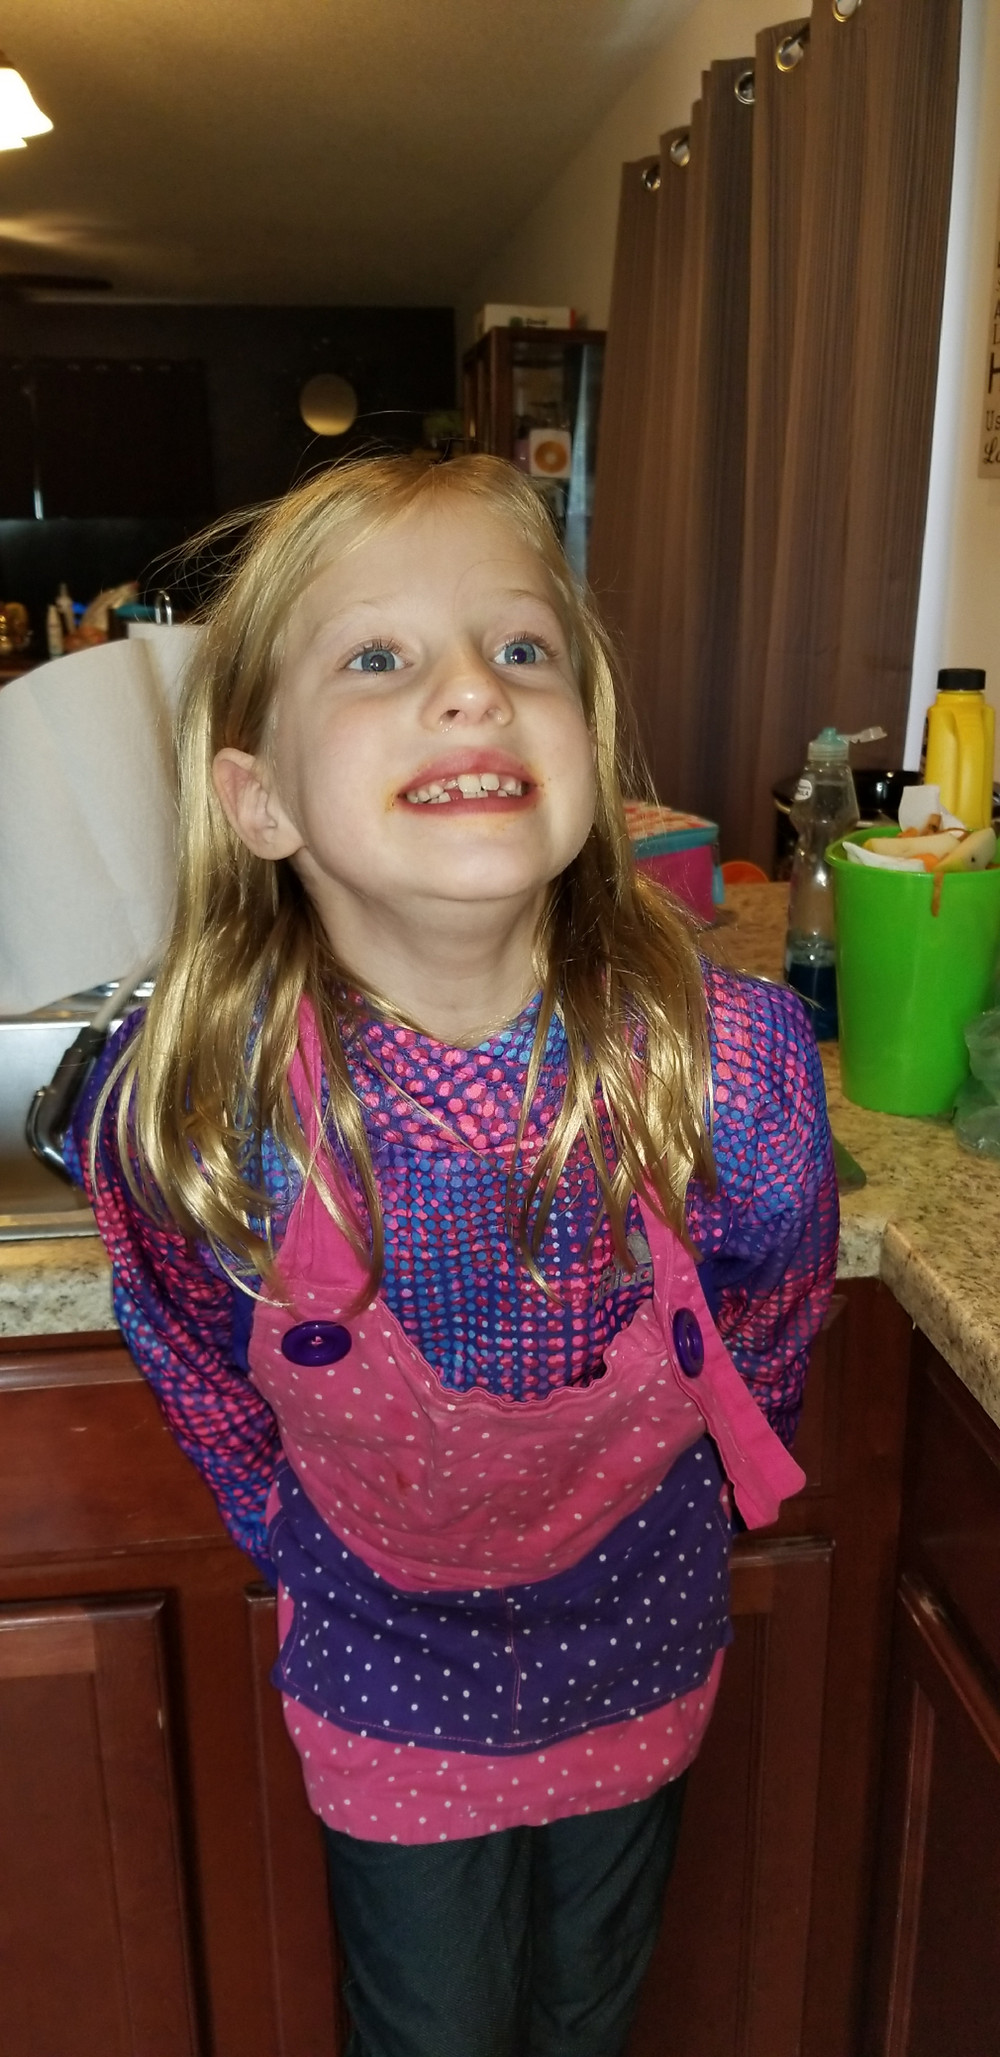 An 8 year old girl, wearing a pink and purple apron. She has blond hair, blue eyes, and her teeth are not all the same size due to some adult teeth interspersed with her baby teeth.